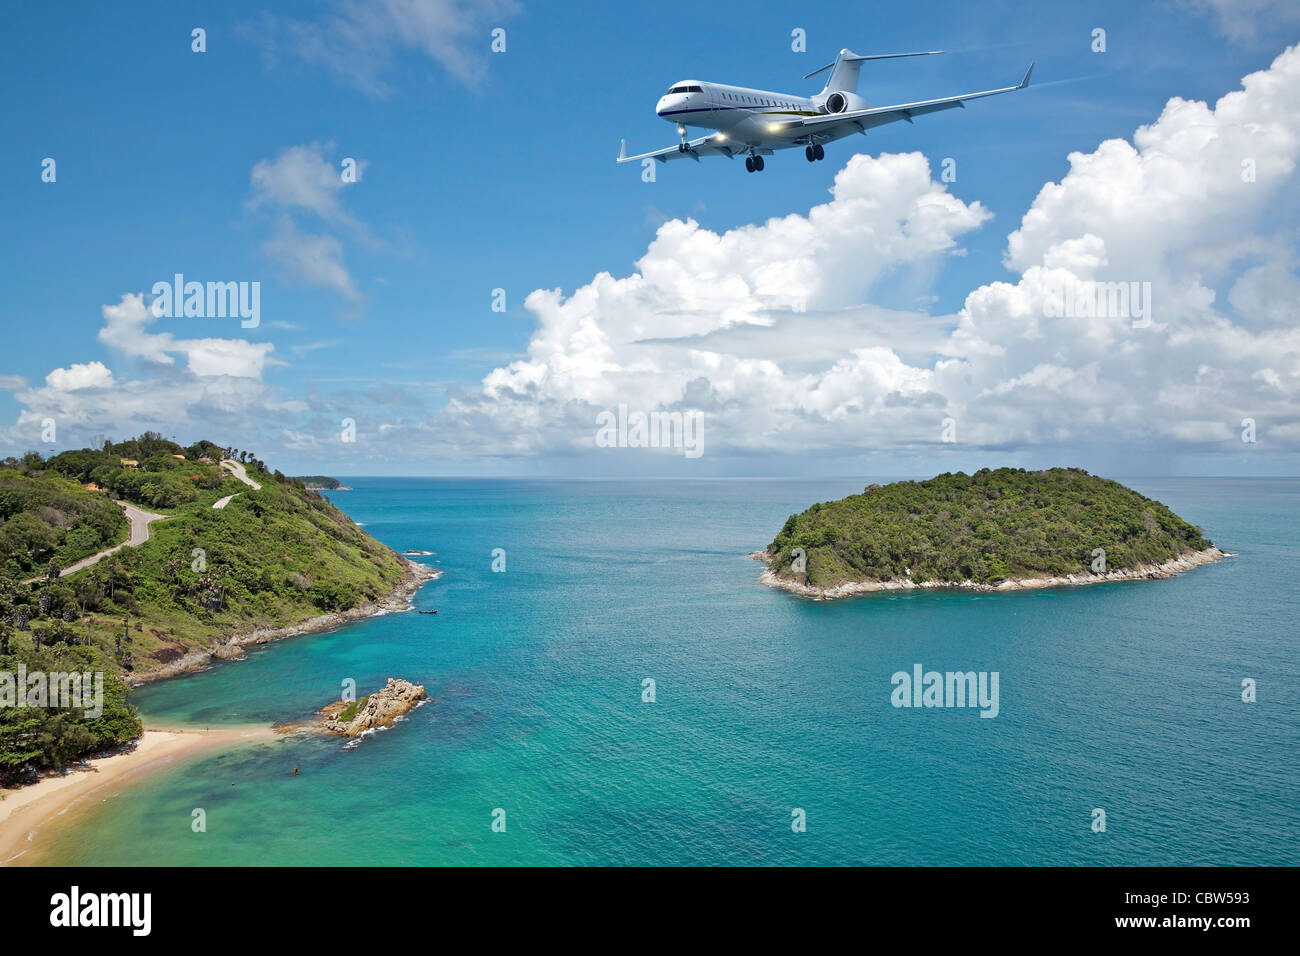 Private jet plane is going to land at the airport of a tropical island. Luxury style living concept. - Stock Image